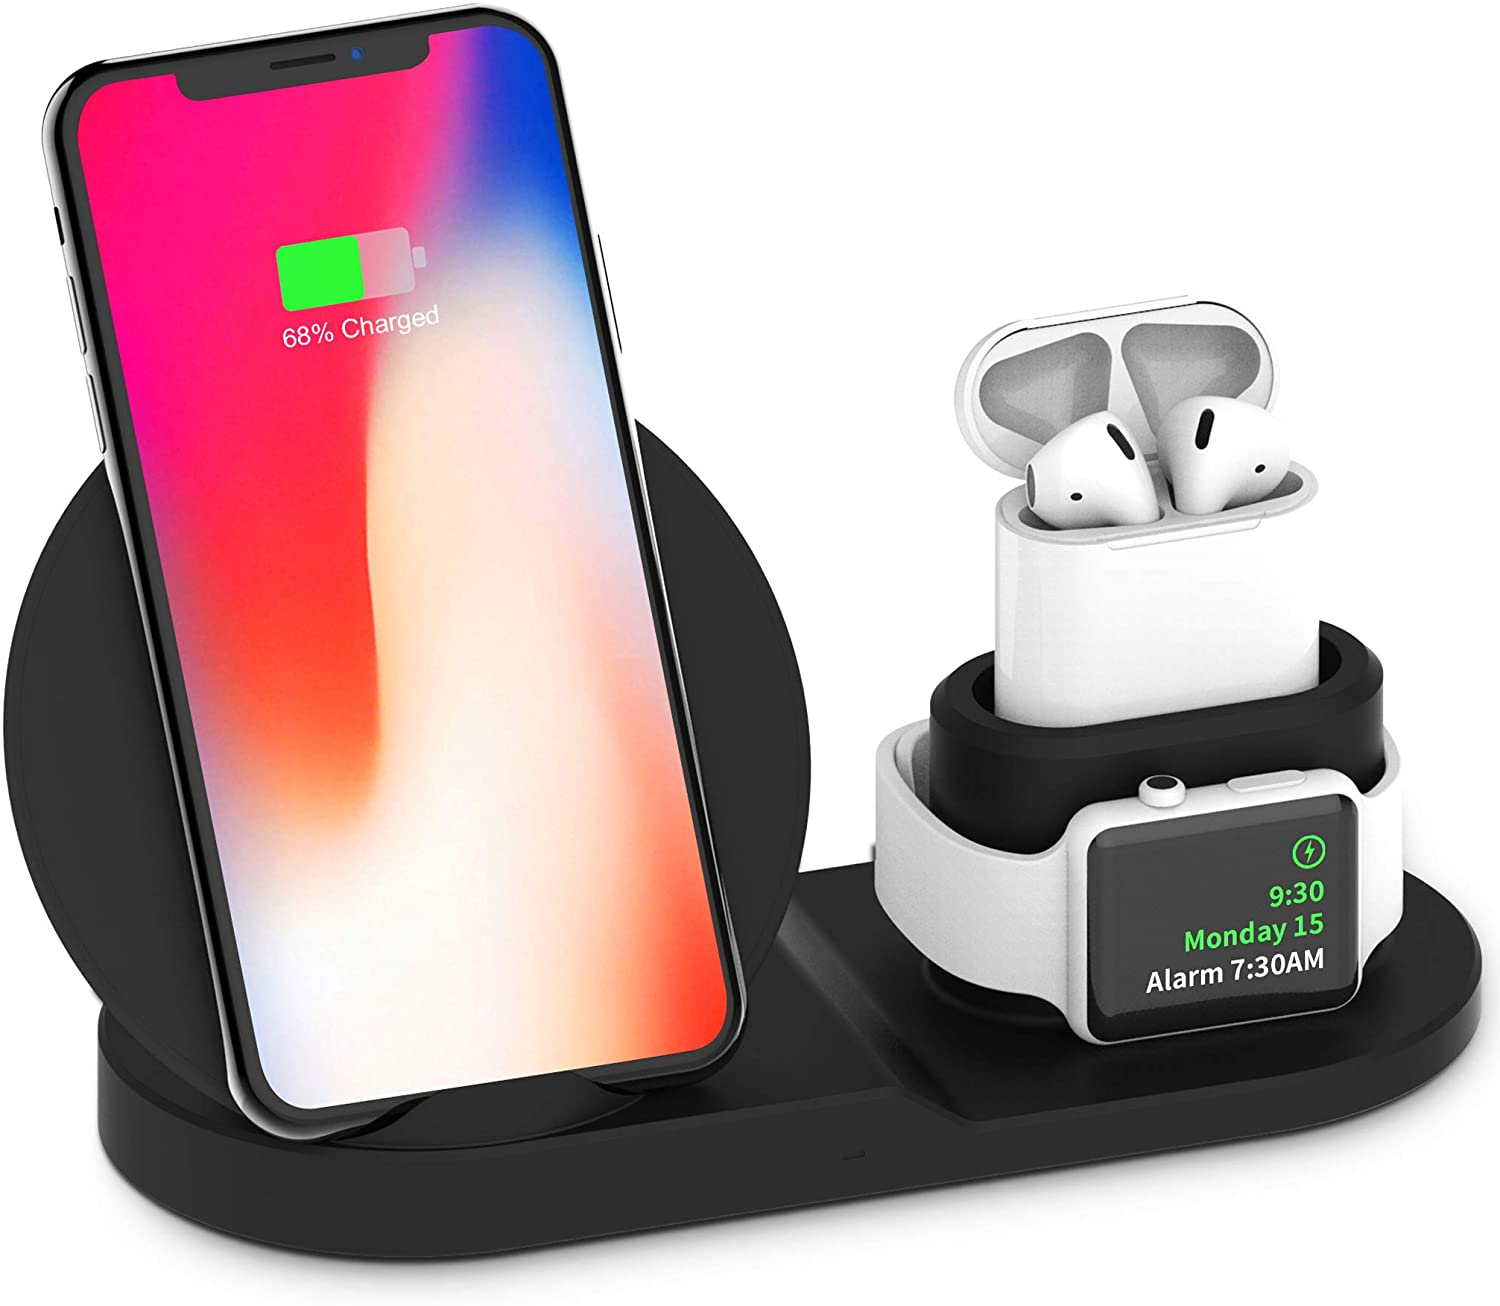 Wireless Charger, 3 in 1 Charging Station for Apple, Wireless Charging Stand Apple Watch Charger for Apple Watch and iPhone Airpod Compatible for iPhone X/XS/XR/Xs Max/8 Plus iWatch Airpods-Black